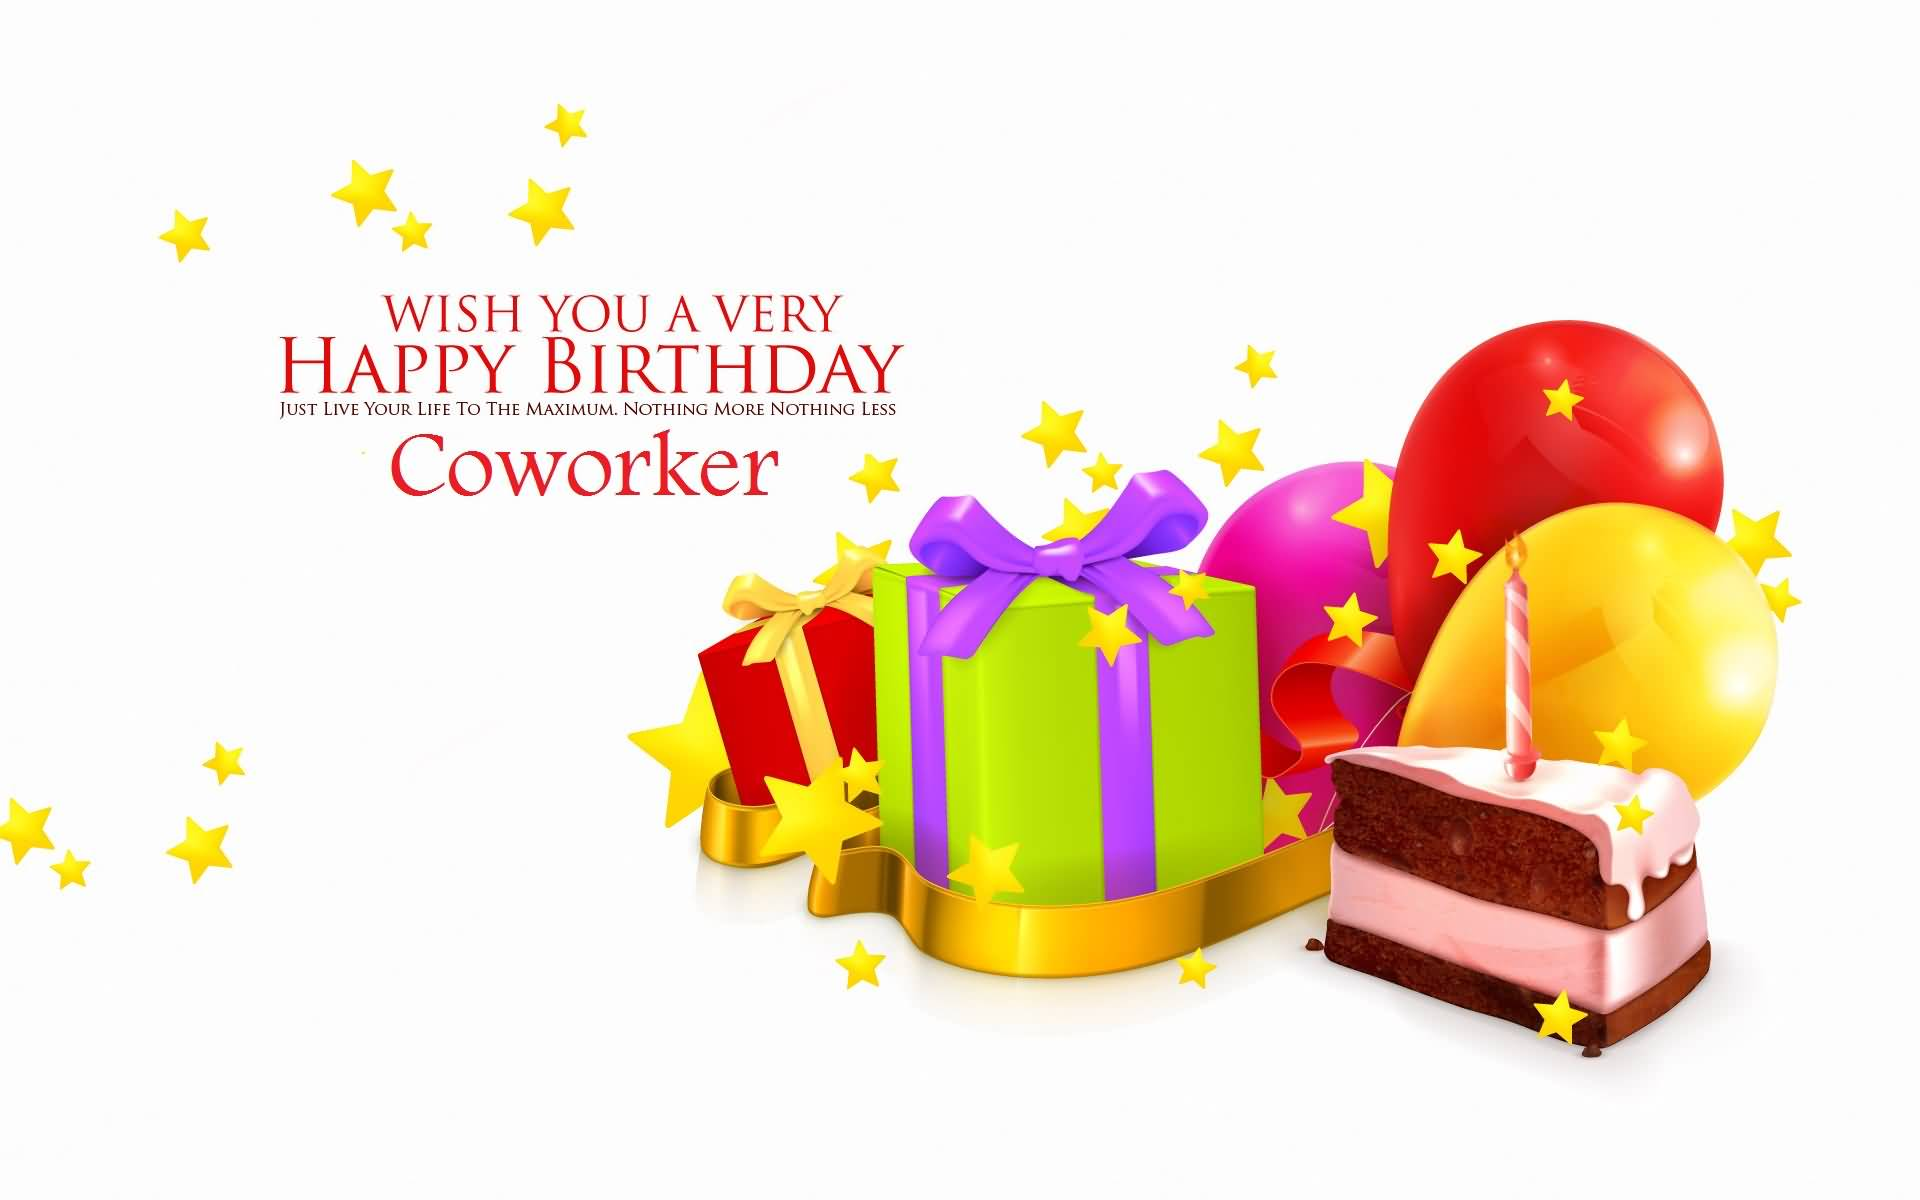 birthday wishes for coworker card ; Wish-You-A-Very-Happy-Birthday-Coworker-Best-Greeting-Image